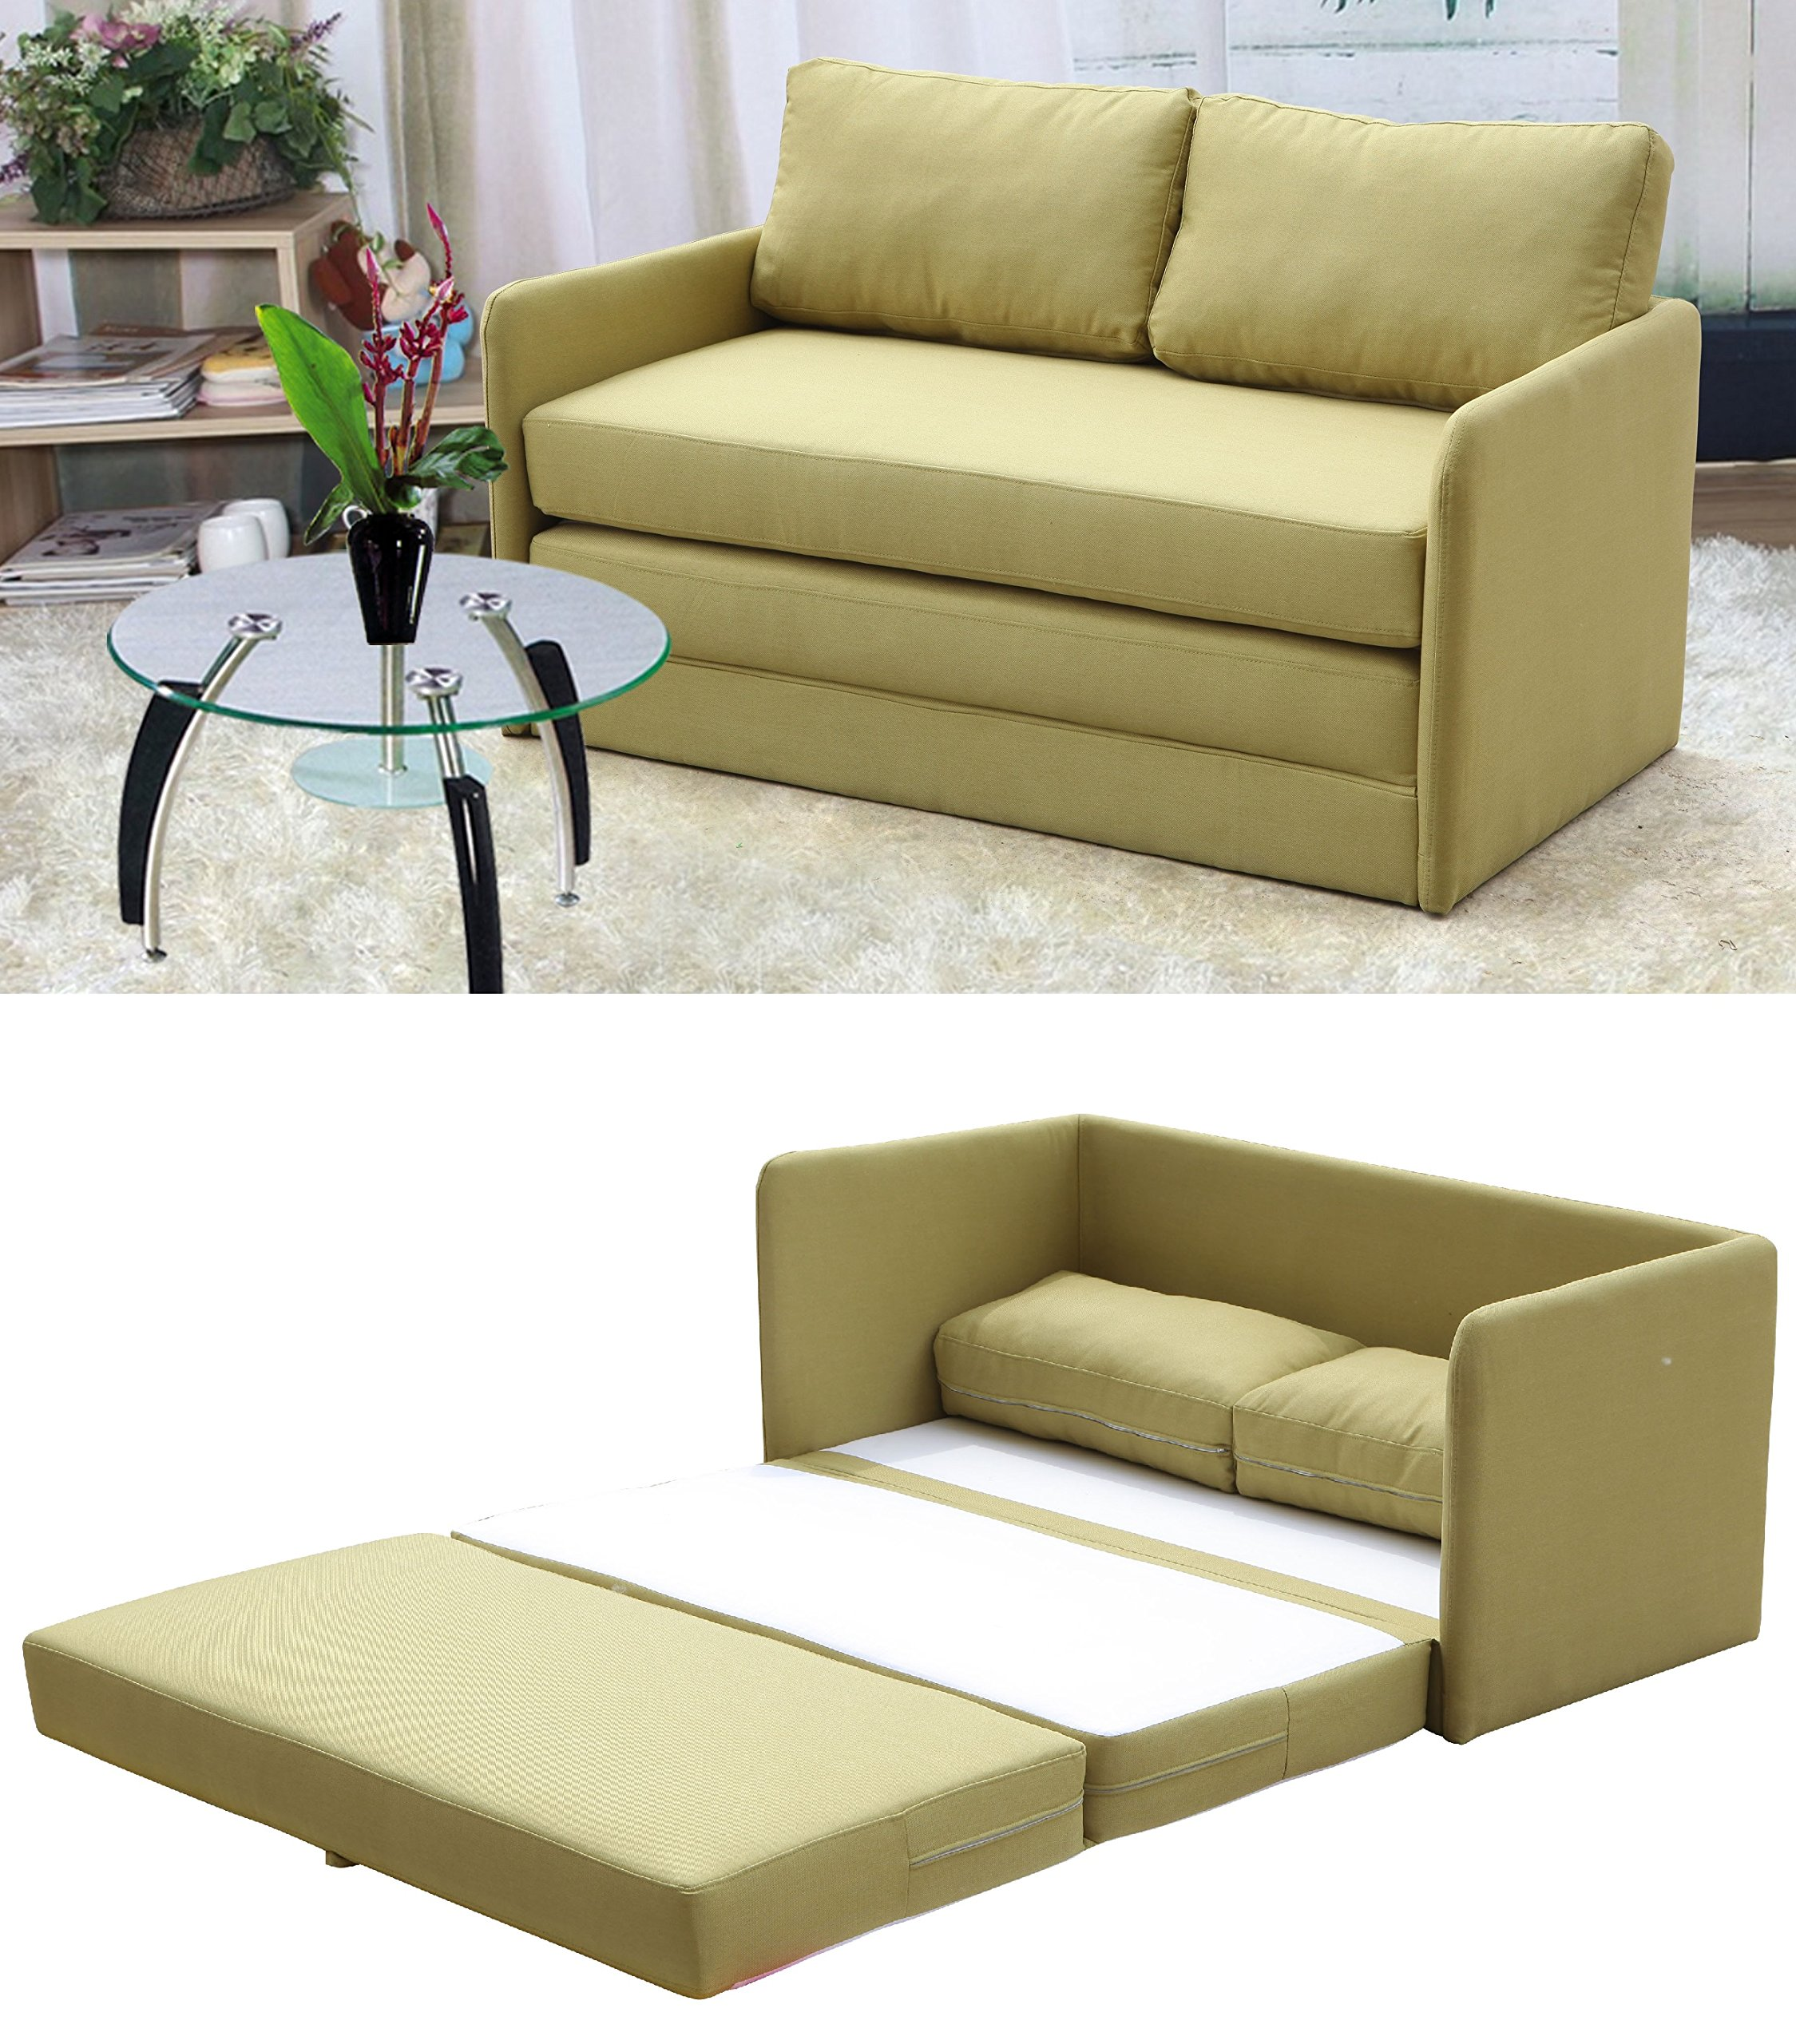 Container Furniture Direct Kathy Collection Modern Contemporary Fabric Upholstered Livingroom Loveseat Sleeper, Olive